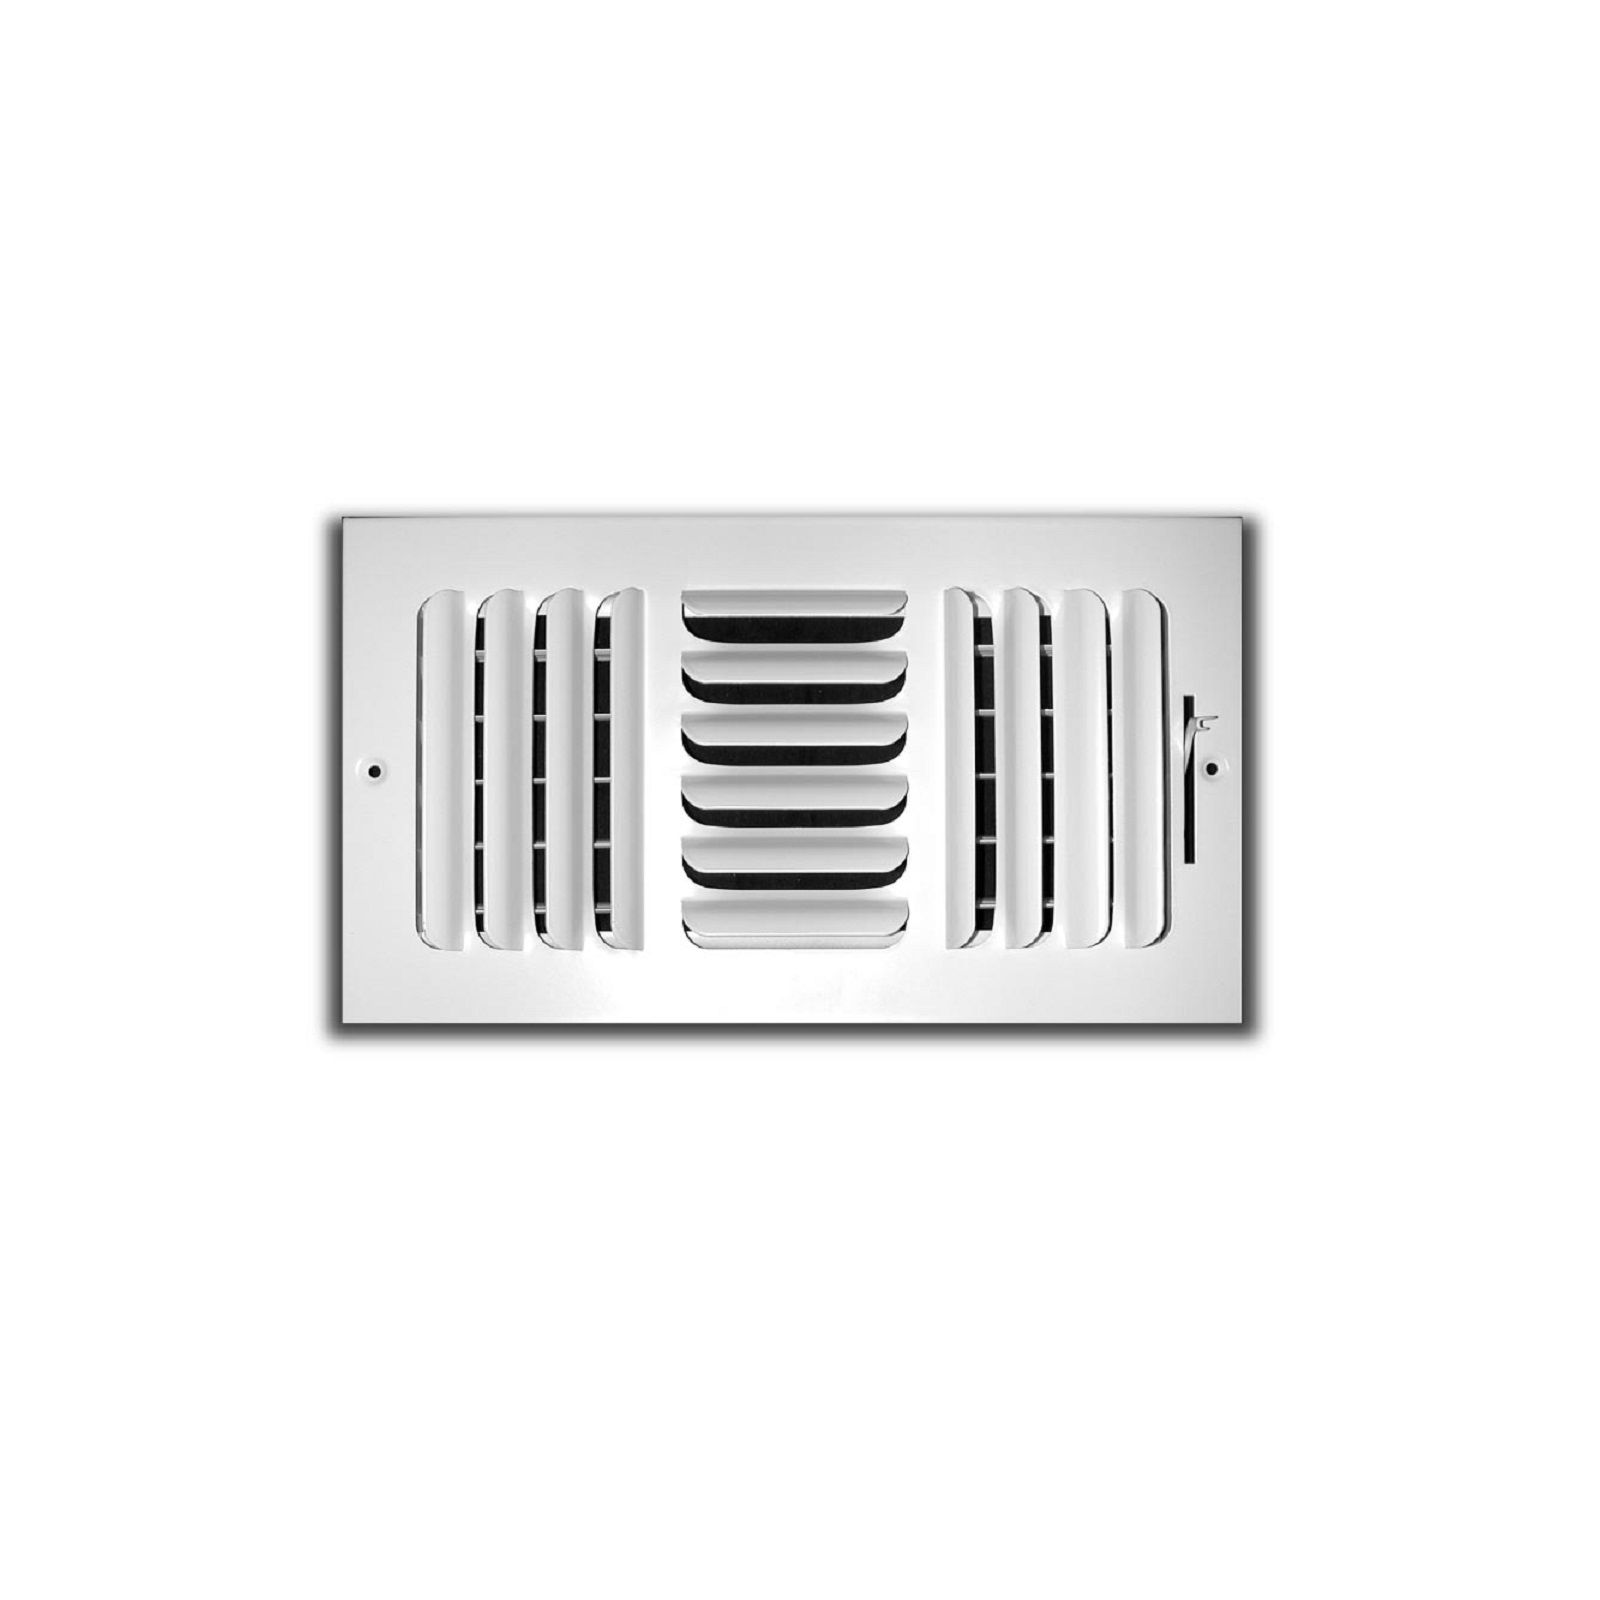 "TRUaire 403M 06X06 - Fixed Curved Blade Wall/Ceiling Register With Multi Shutter Damper, 3-Way, White, 06"" X 06"""